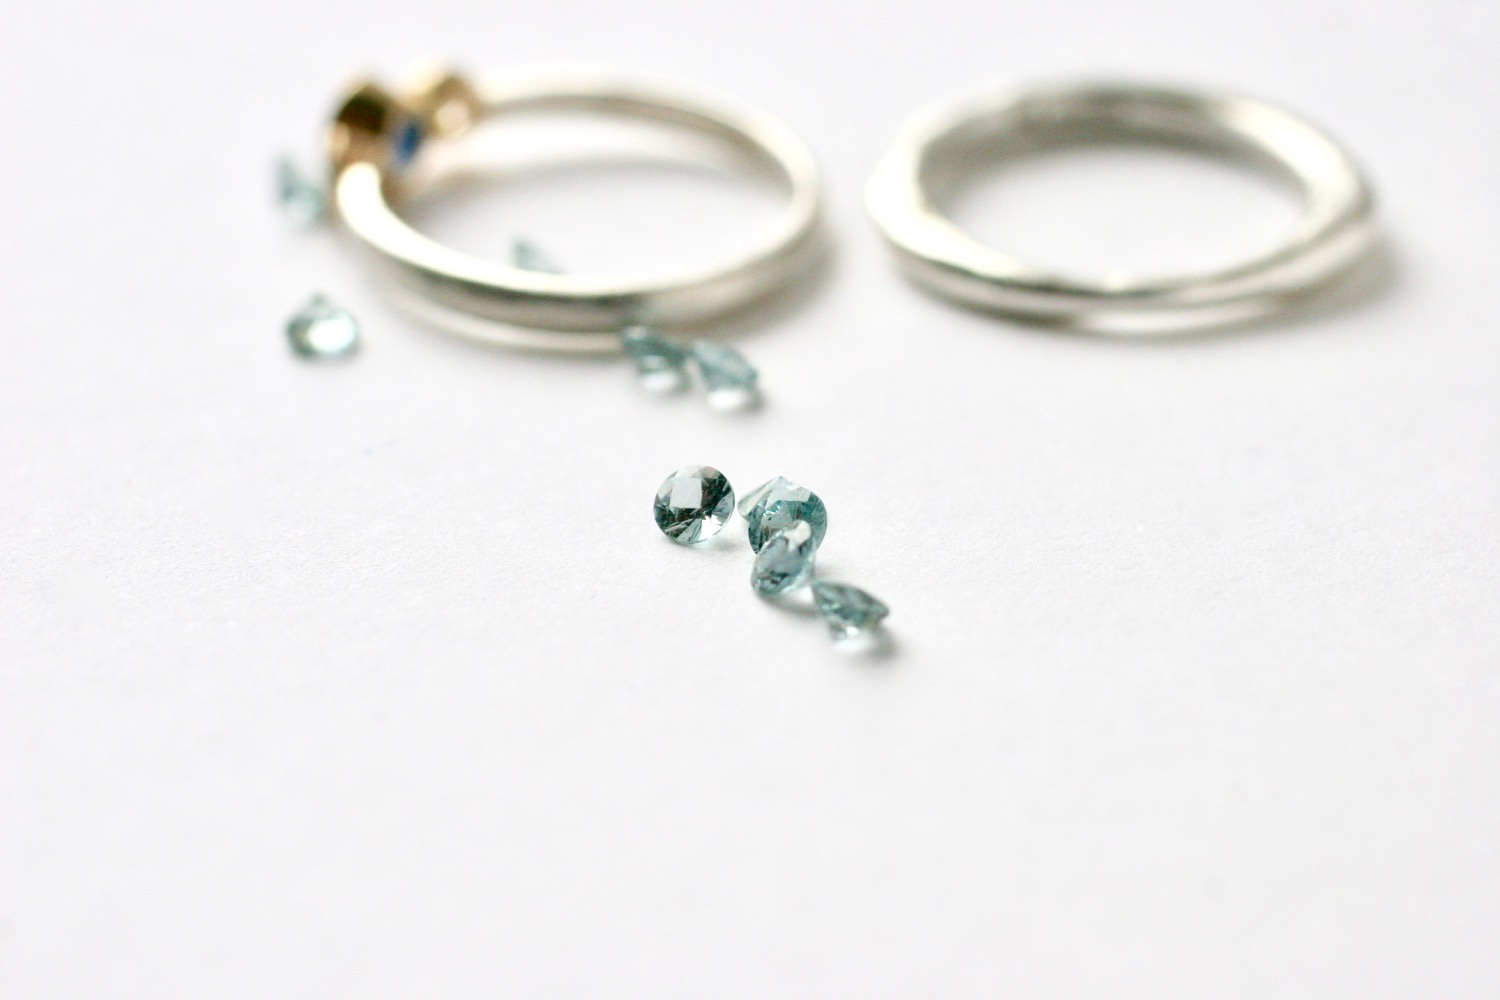 Ethical-malawi-teal-sapphires-glasswing-engagement-ring.jpg